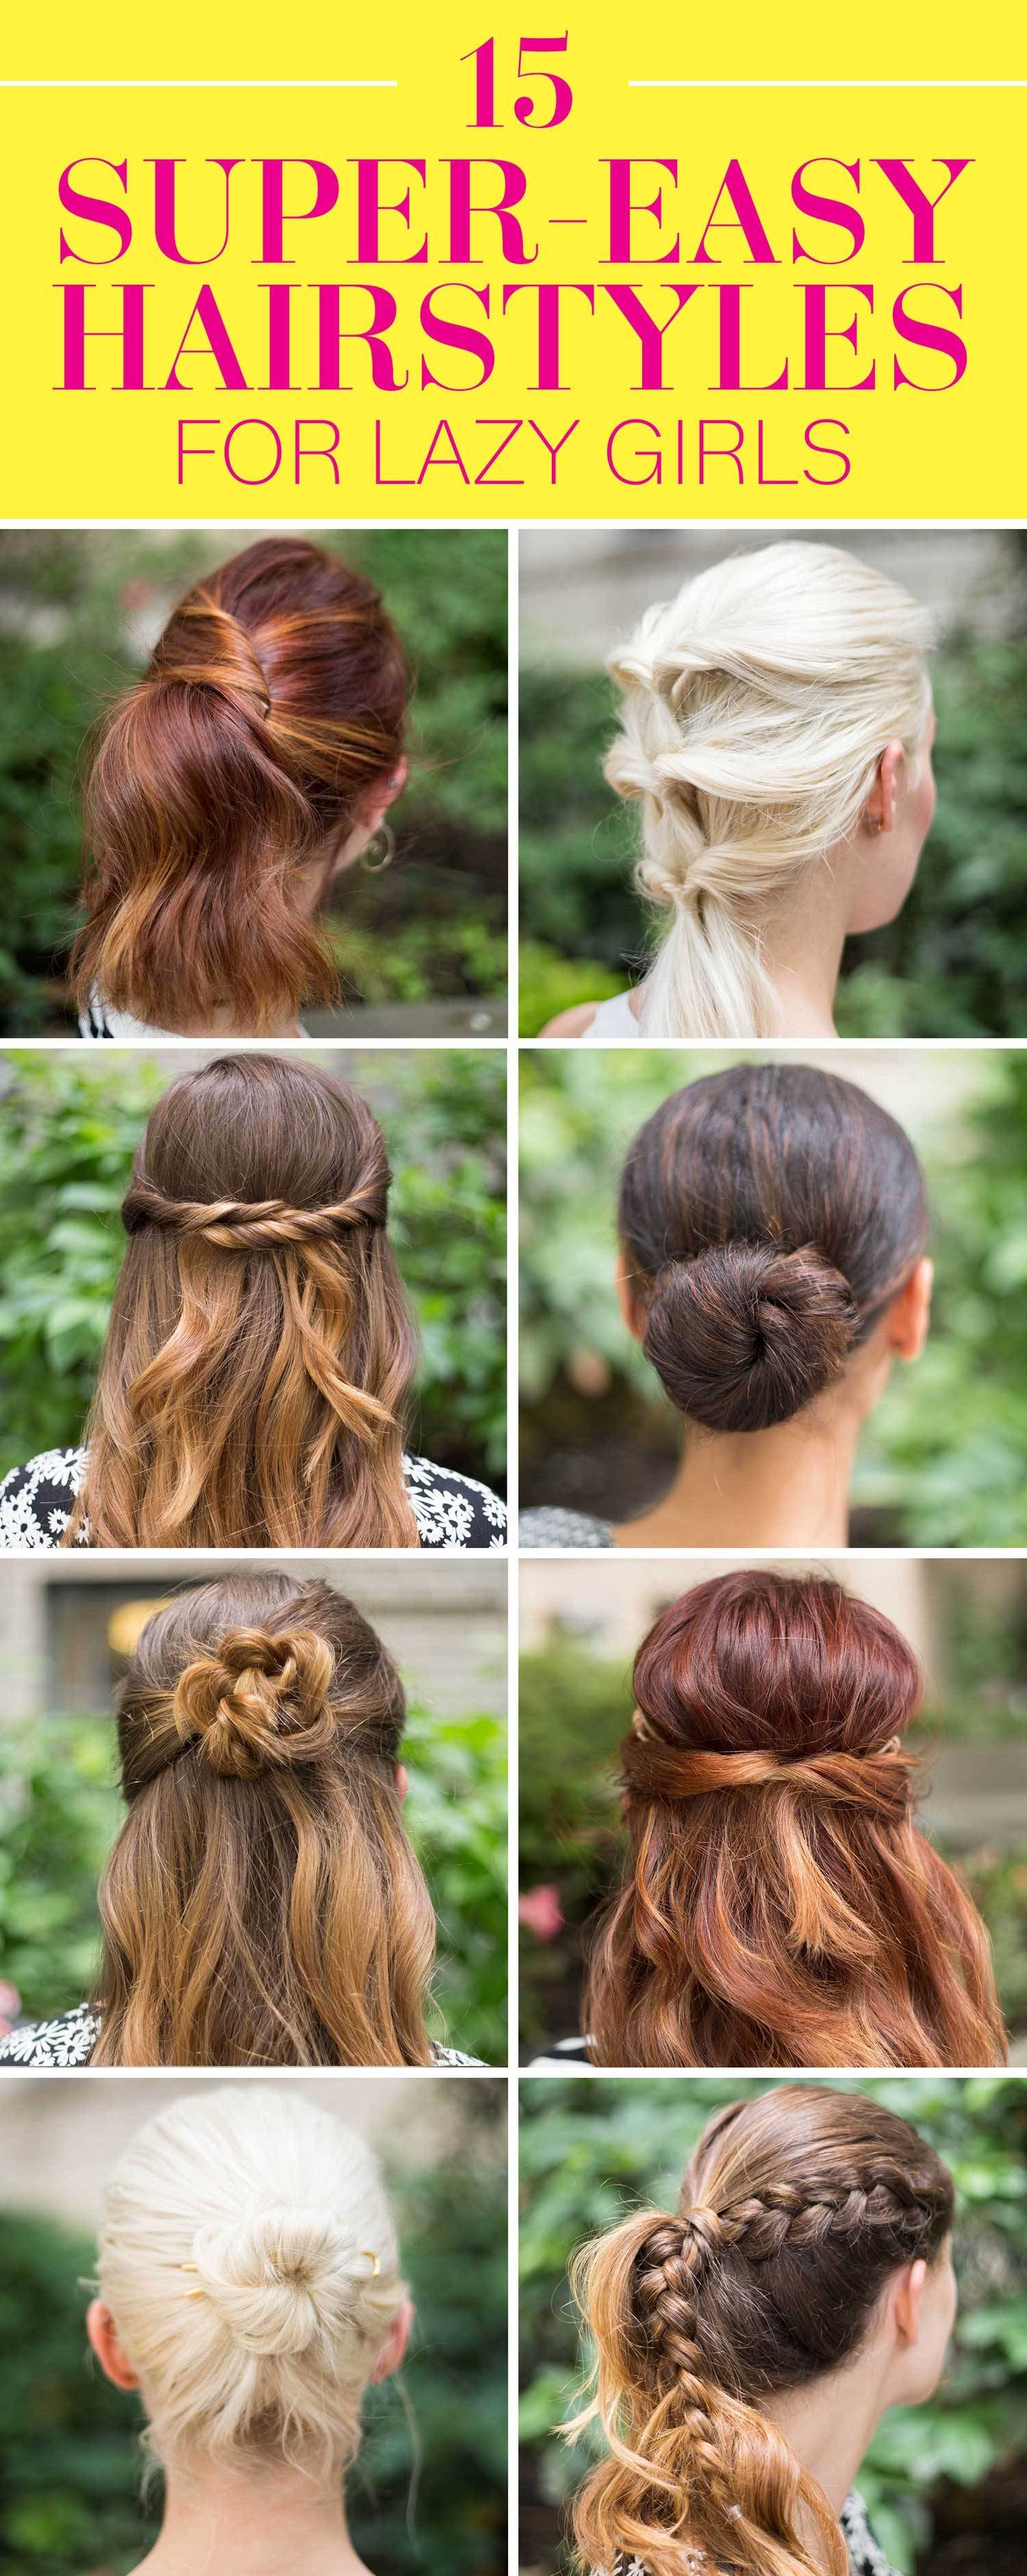 The Best 15 Super Easy Hairstyles For Girls In 2016 Three Step Pictures